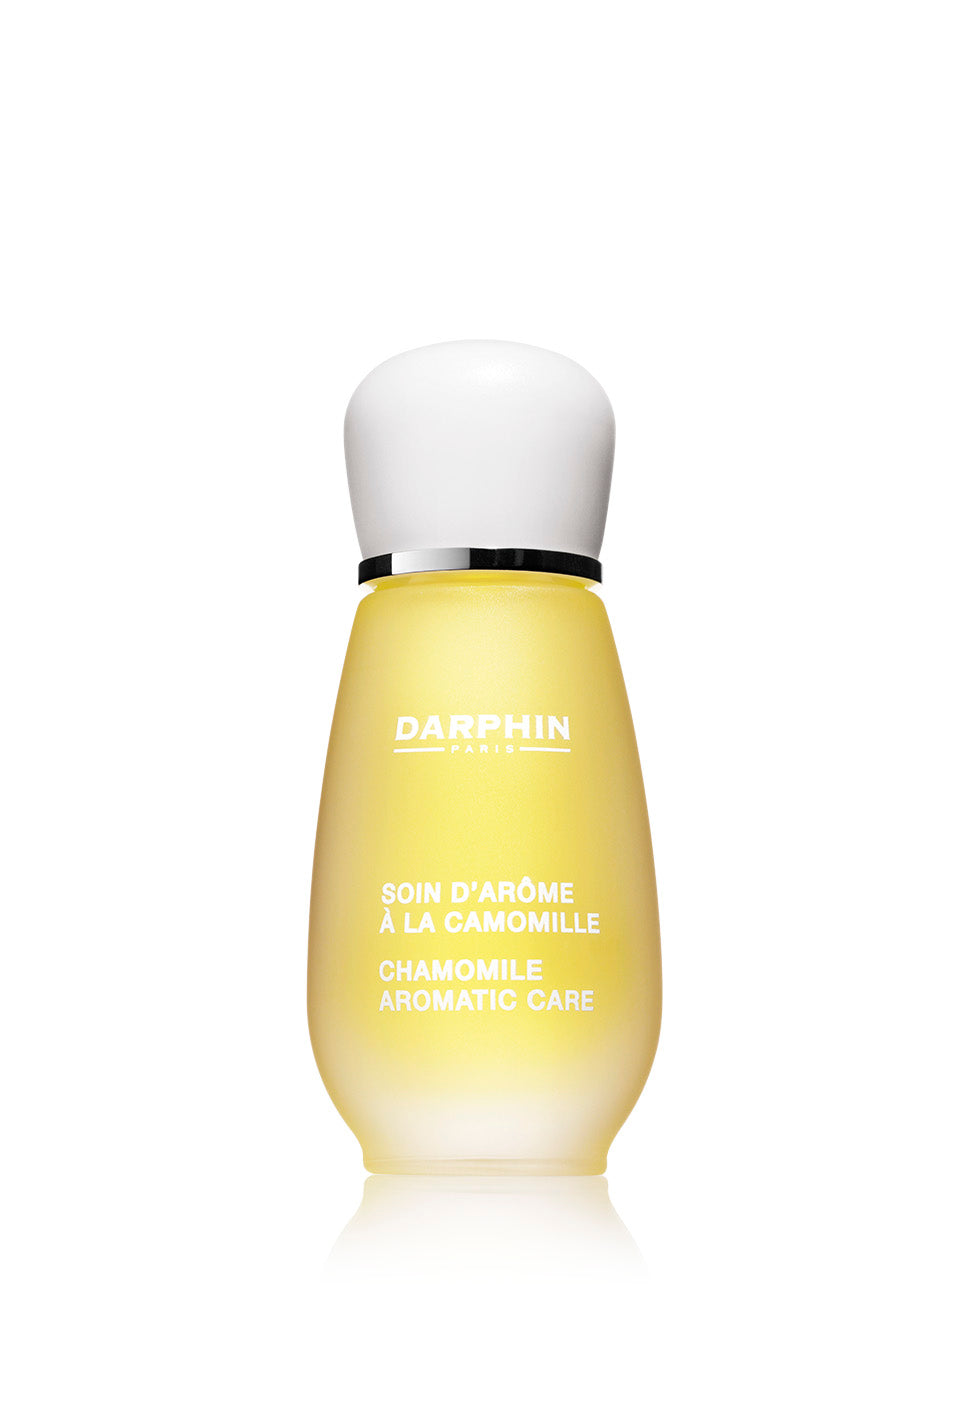 Chamomile aromatic care15ml